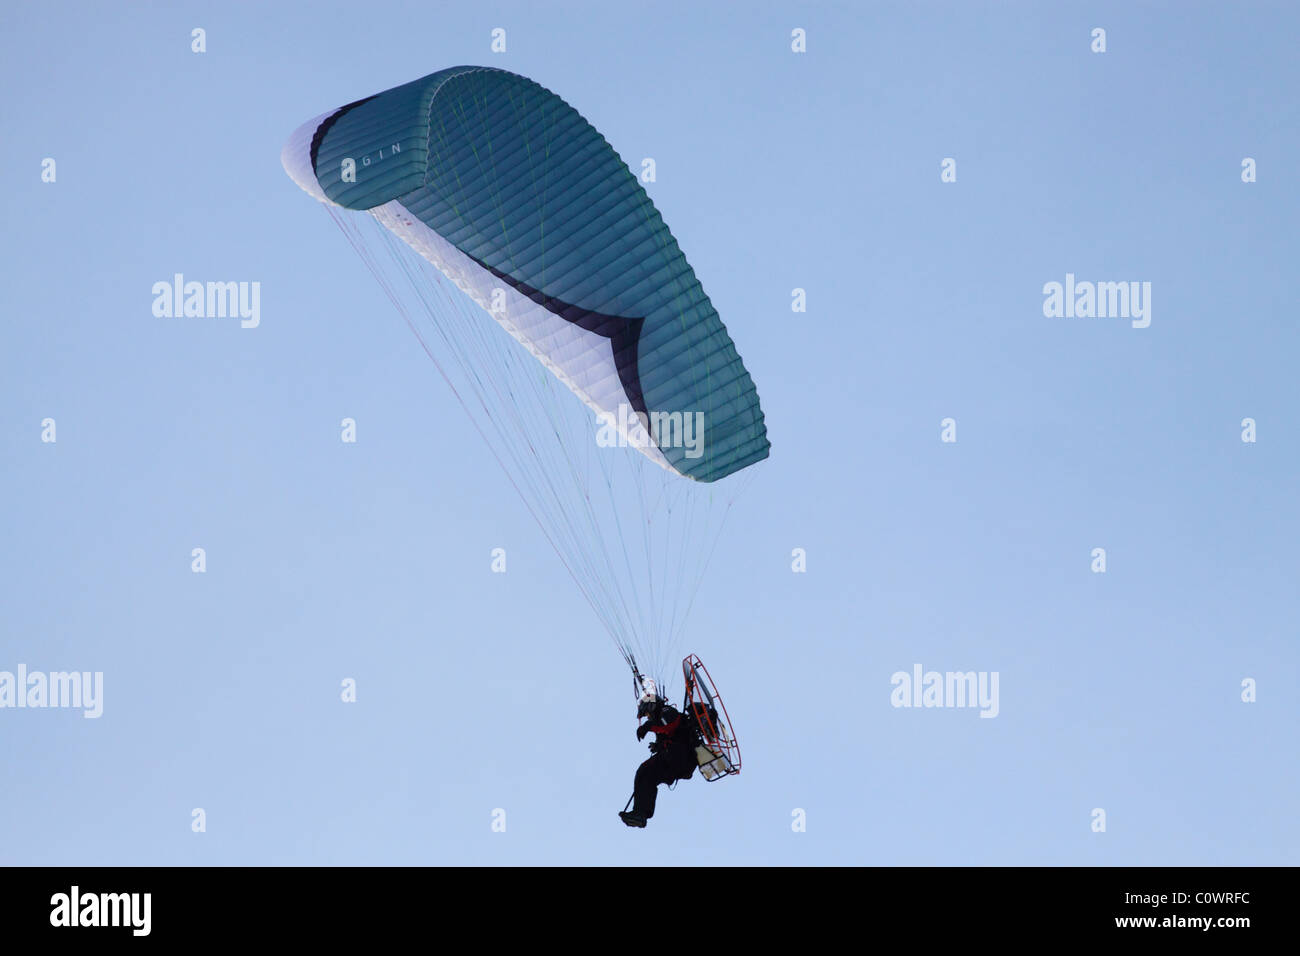 Flying Man - motorized paraglider flying on a clear day - Stock Image